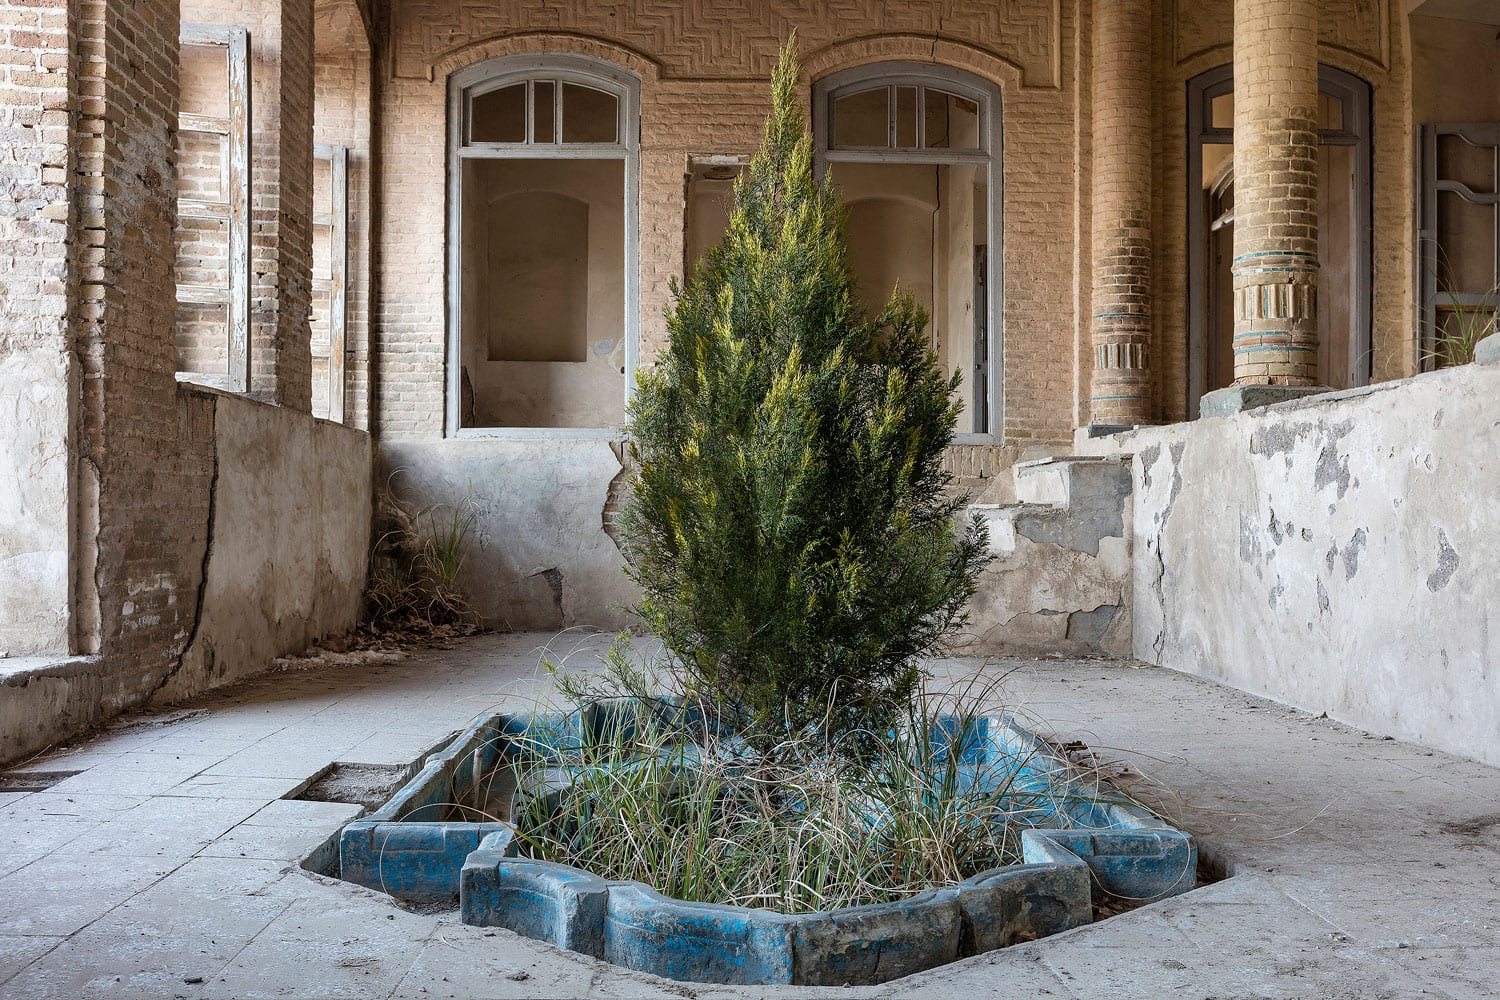 Iranian Abandoned & Overgrown Homes Captured by Gohar Dashti | Yellowtrace